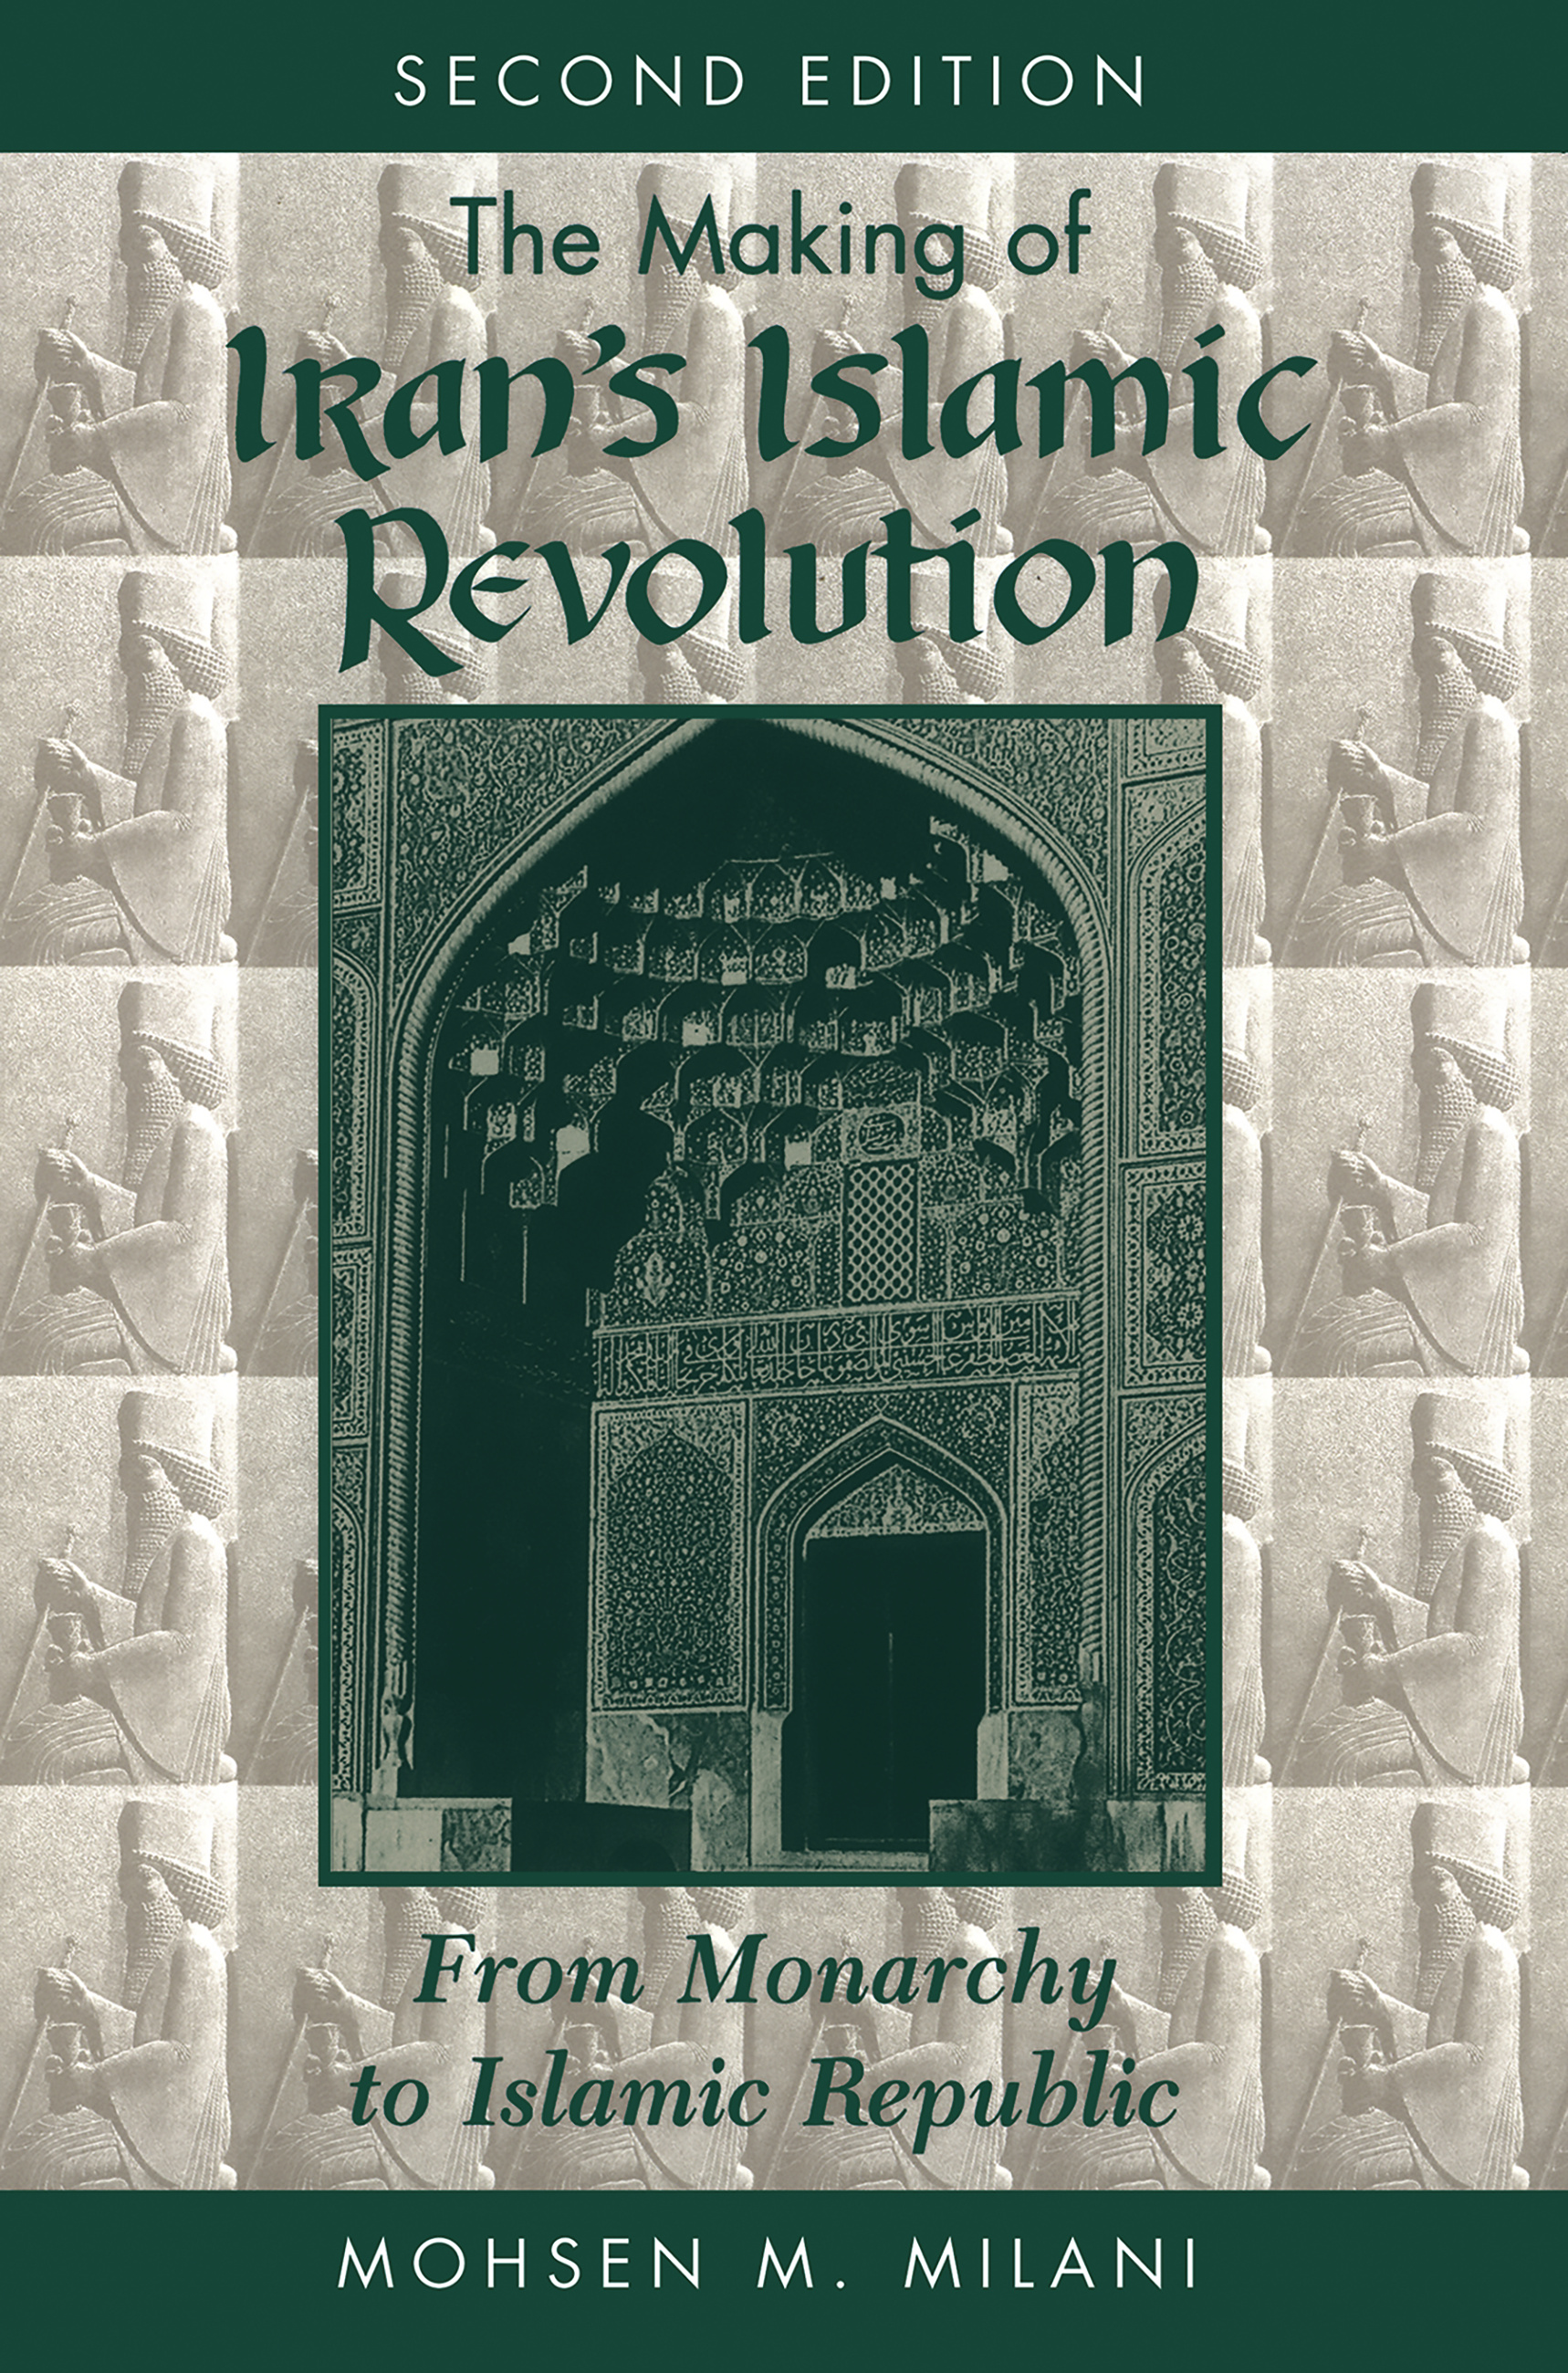 an analysis of the causes and effects of the revolution in the islamic republic of iran The revolution in iran and the foundation of the islamic republic is the culmination of a series of events that began in the sixteenth century of the christian era with the adherence of the majority of the iranian people to the shi'i school of thought in islam.